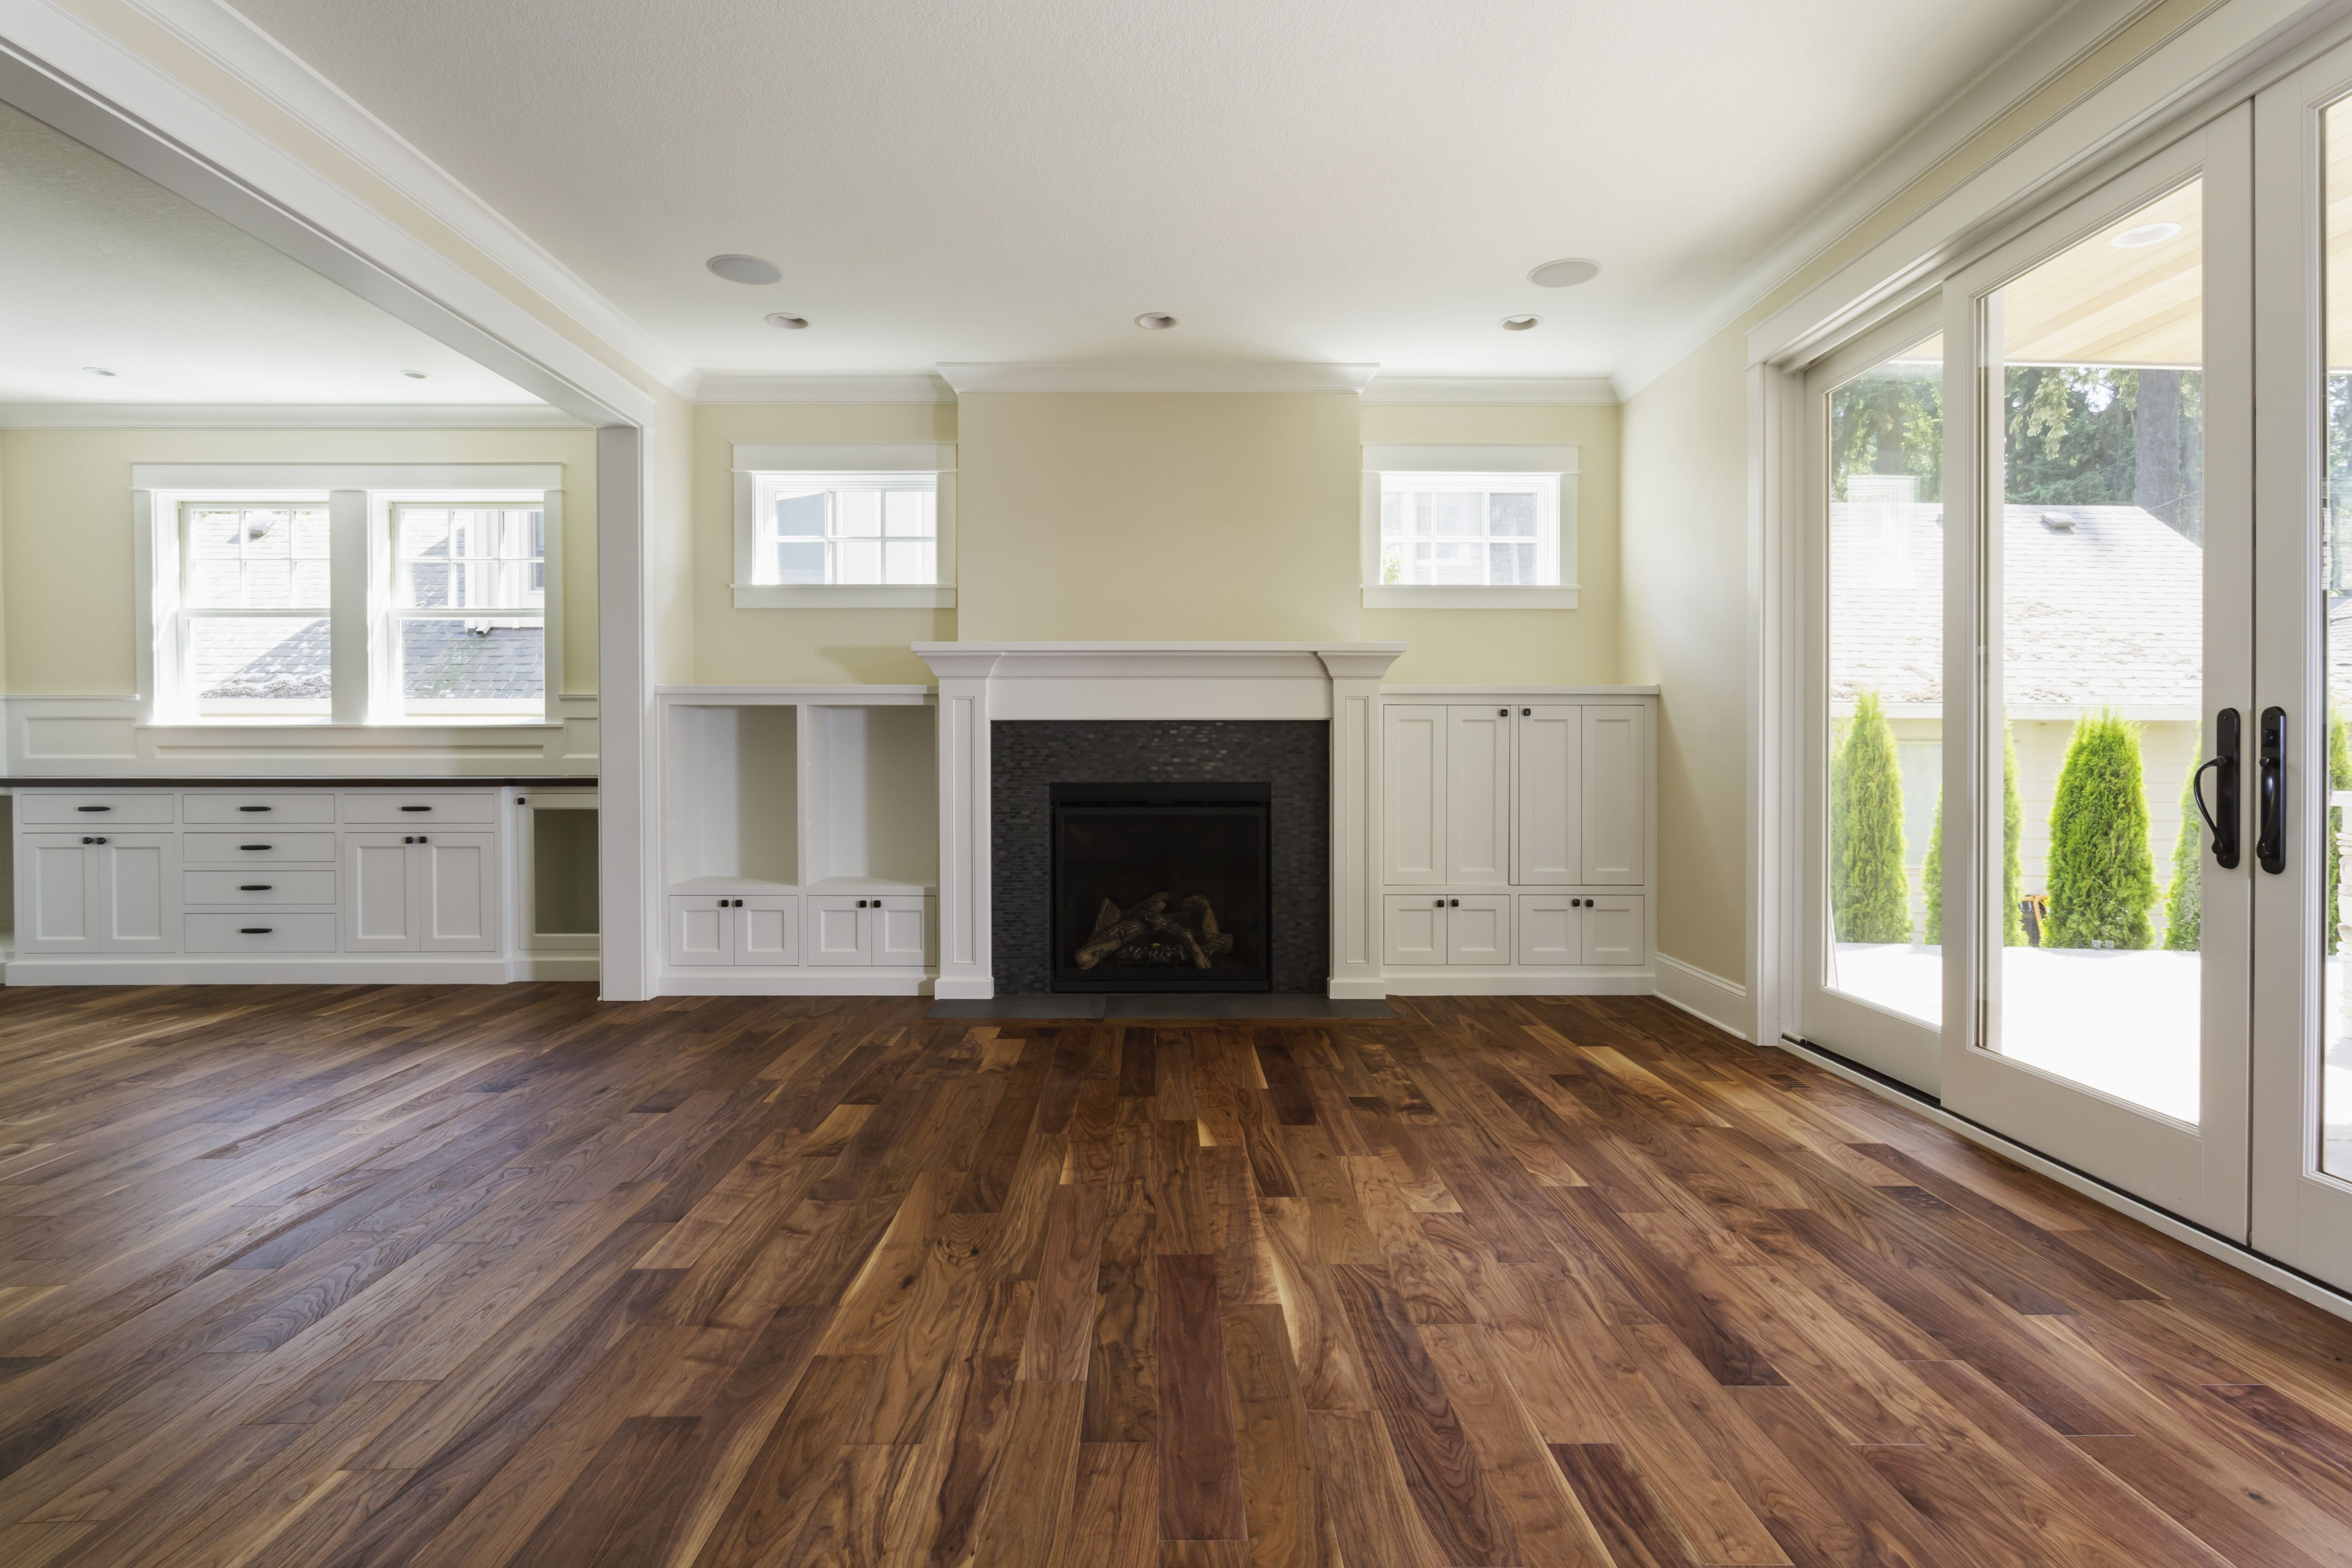 5 wide engineered hardwood flooring of the pros and cons of prefinished hardwood flooring with fireplace and built in shelves in living room 482143011 57bef8e33df78cc16e035397